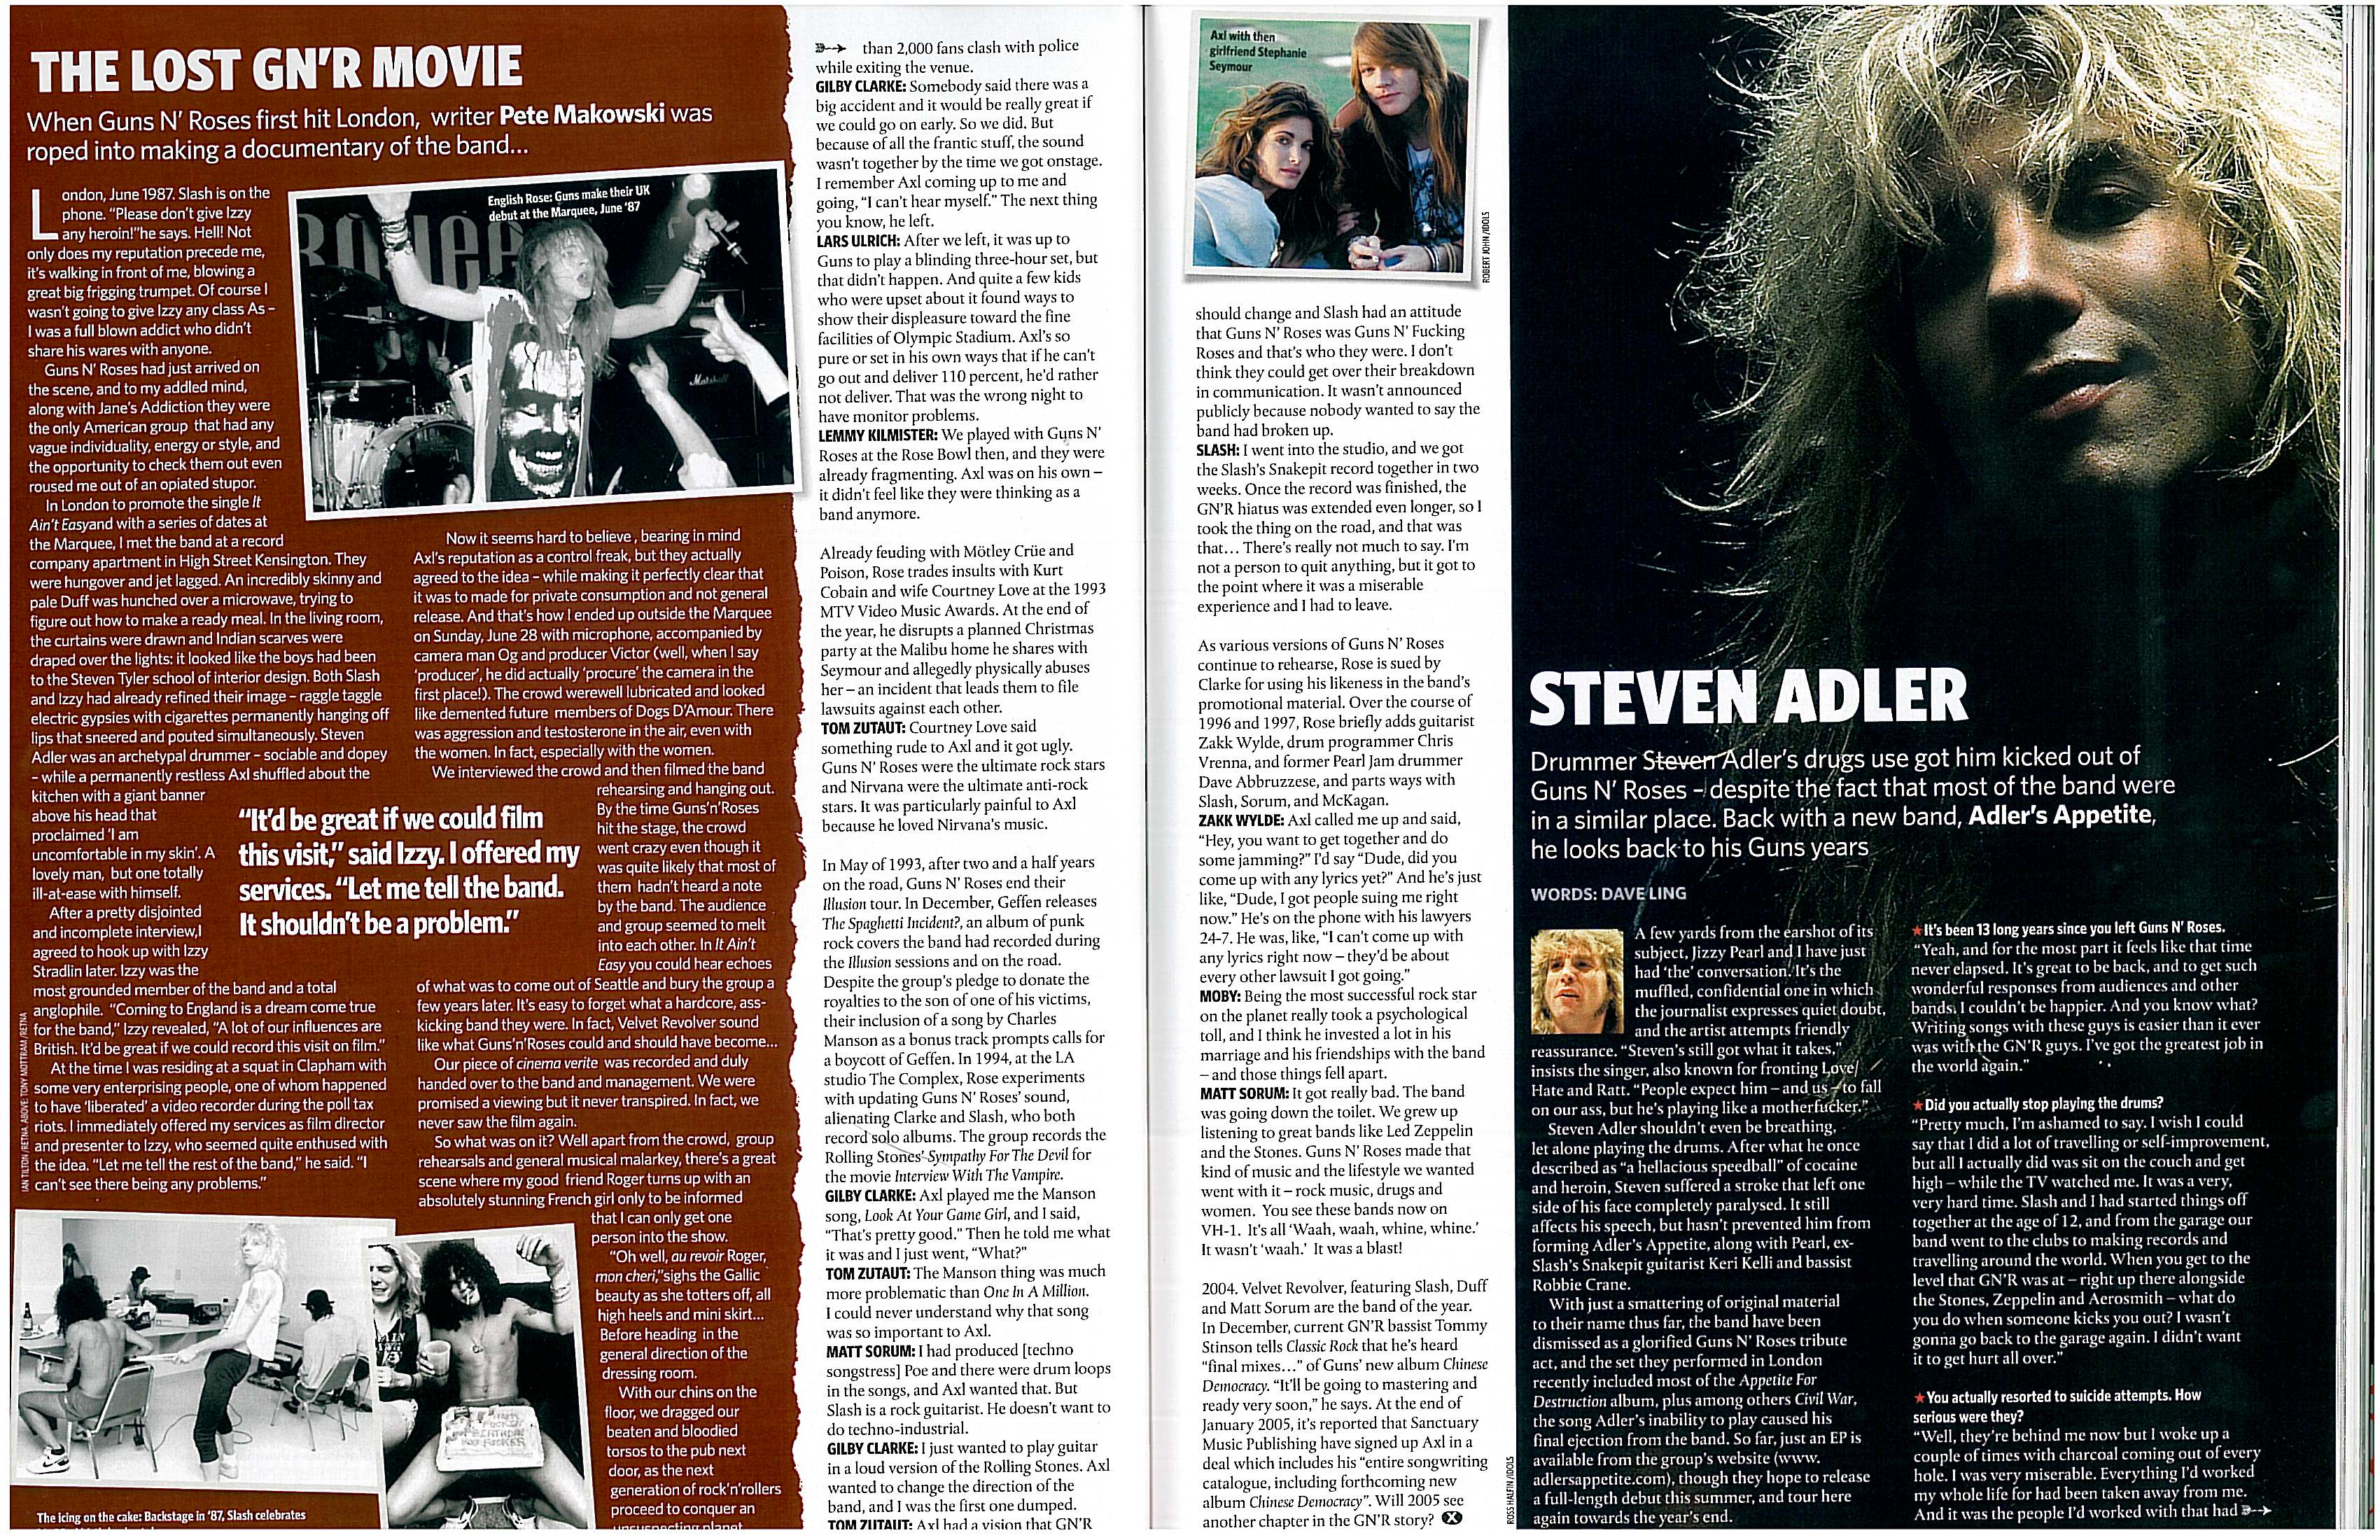 2005.04.XX - Quotes from Duff, Steven and Slash in Classic Rock Magazine Y2wgpTFy_o